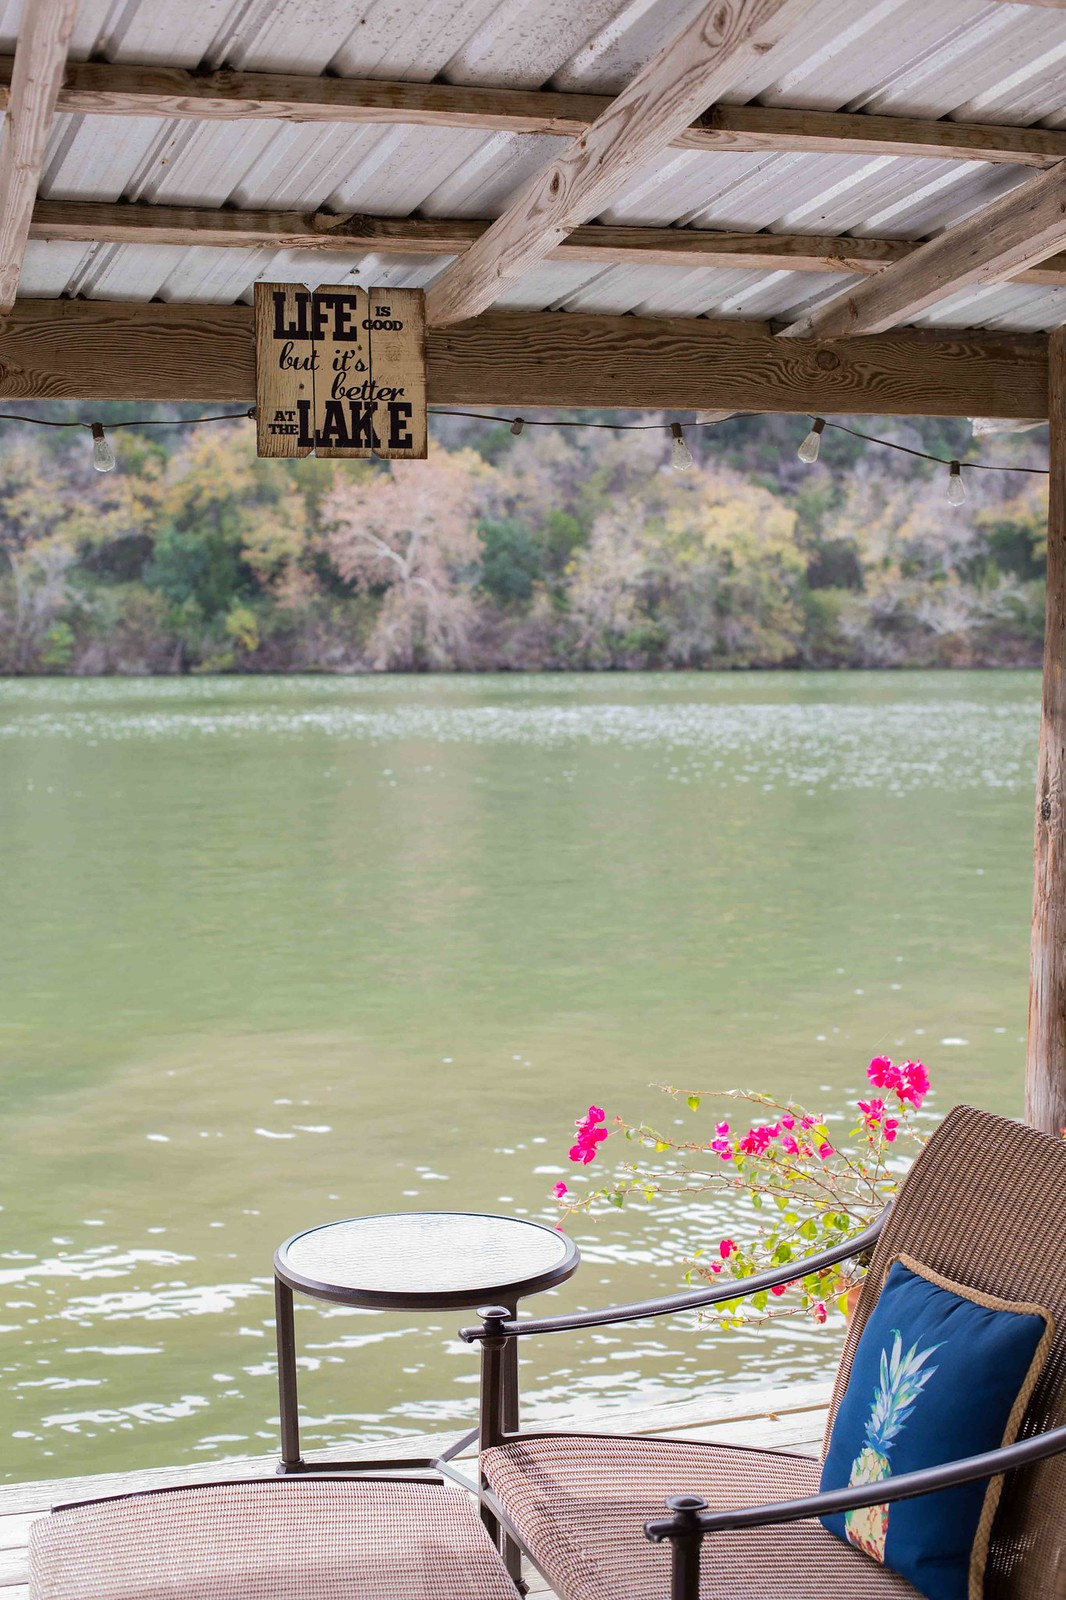 enjoy a day at lake Austin